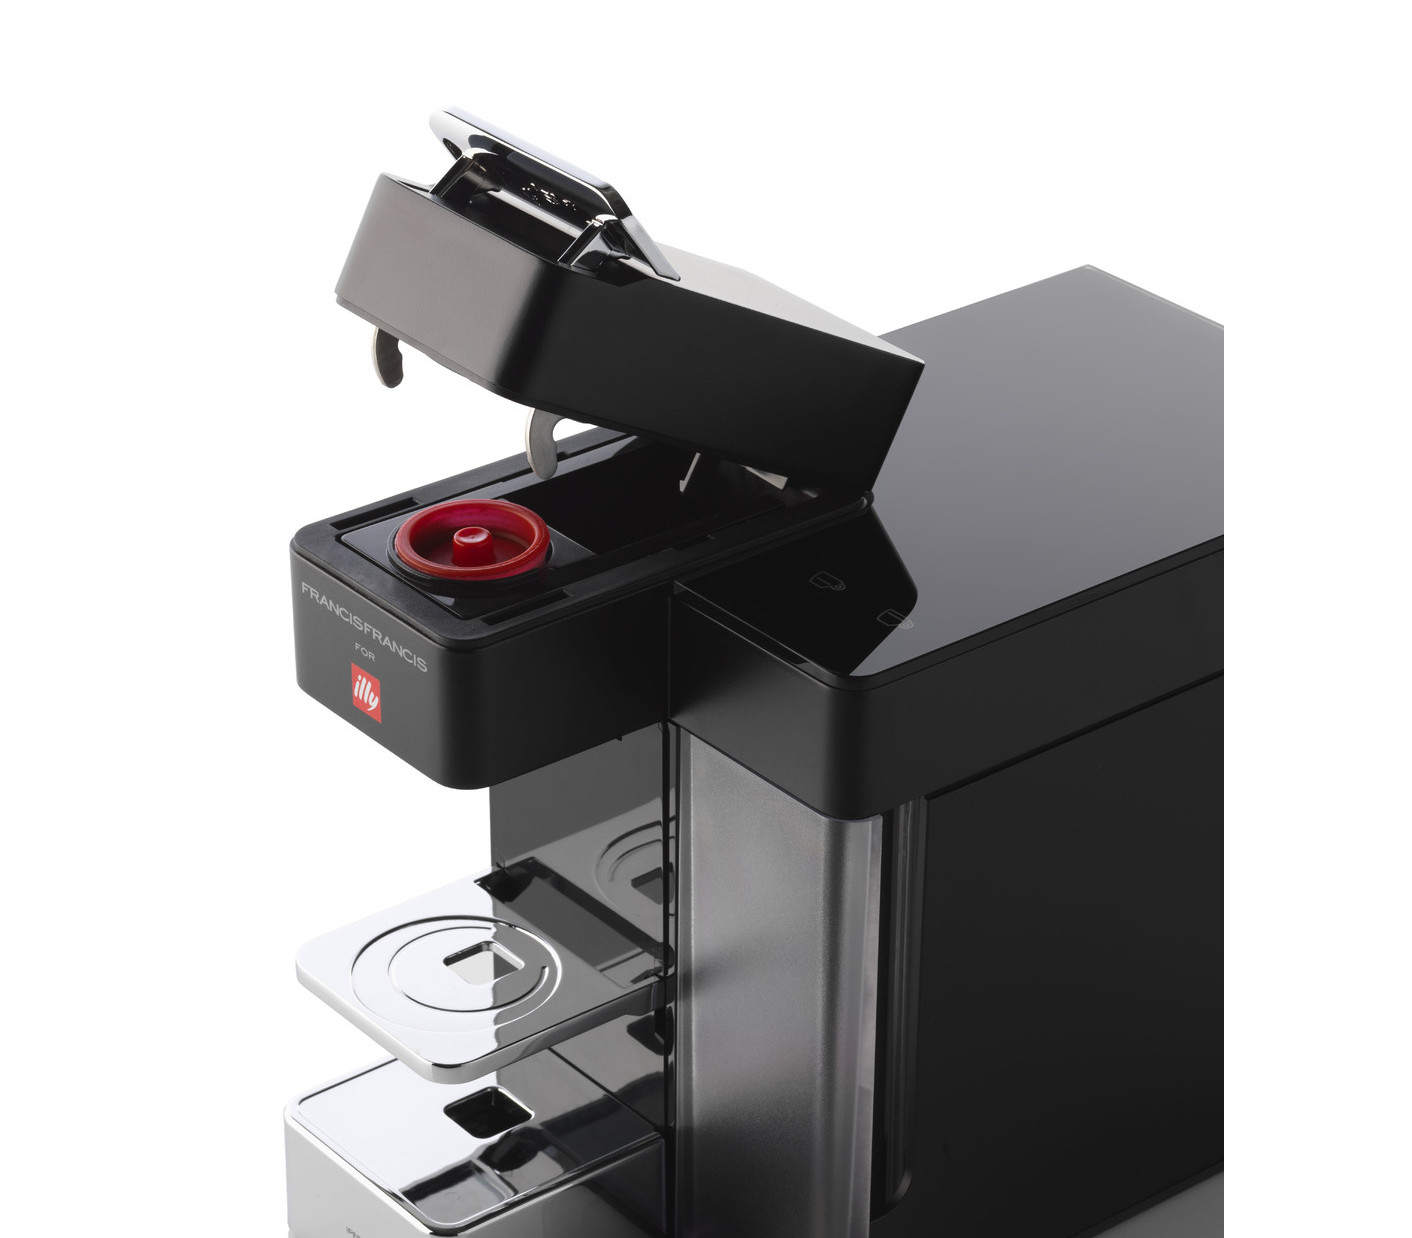 illy francisfrancis iperespresso y5 duo satin machine. Black Bedroom Furniture Sets. Home Design Ideas